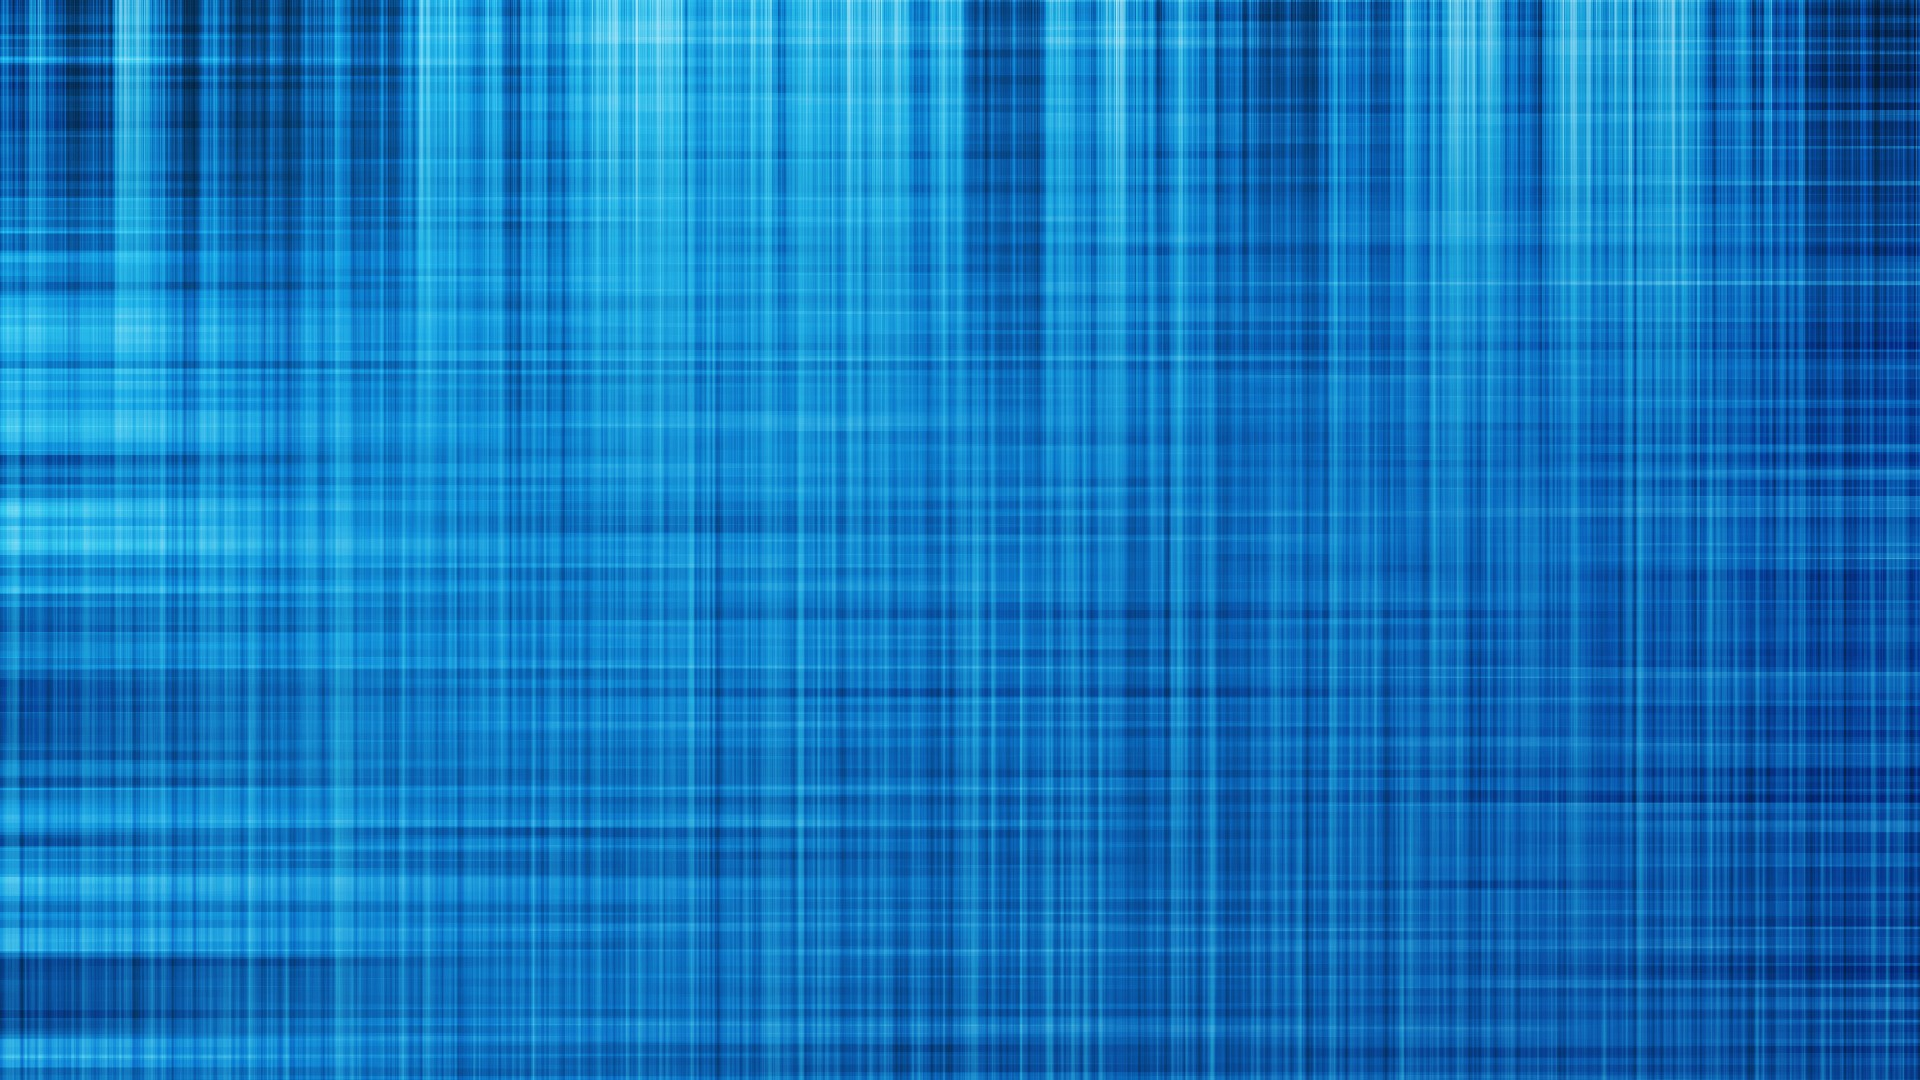 blue wallpaper textures images 1920x1080 1920x1080